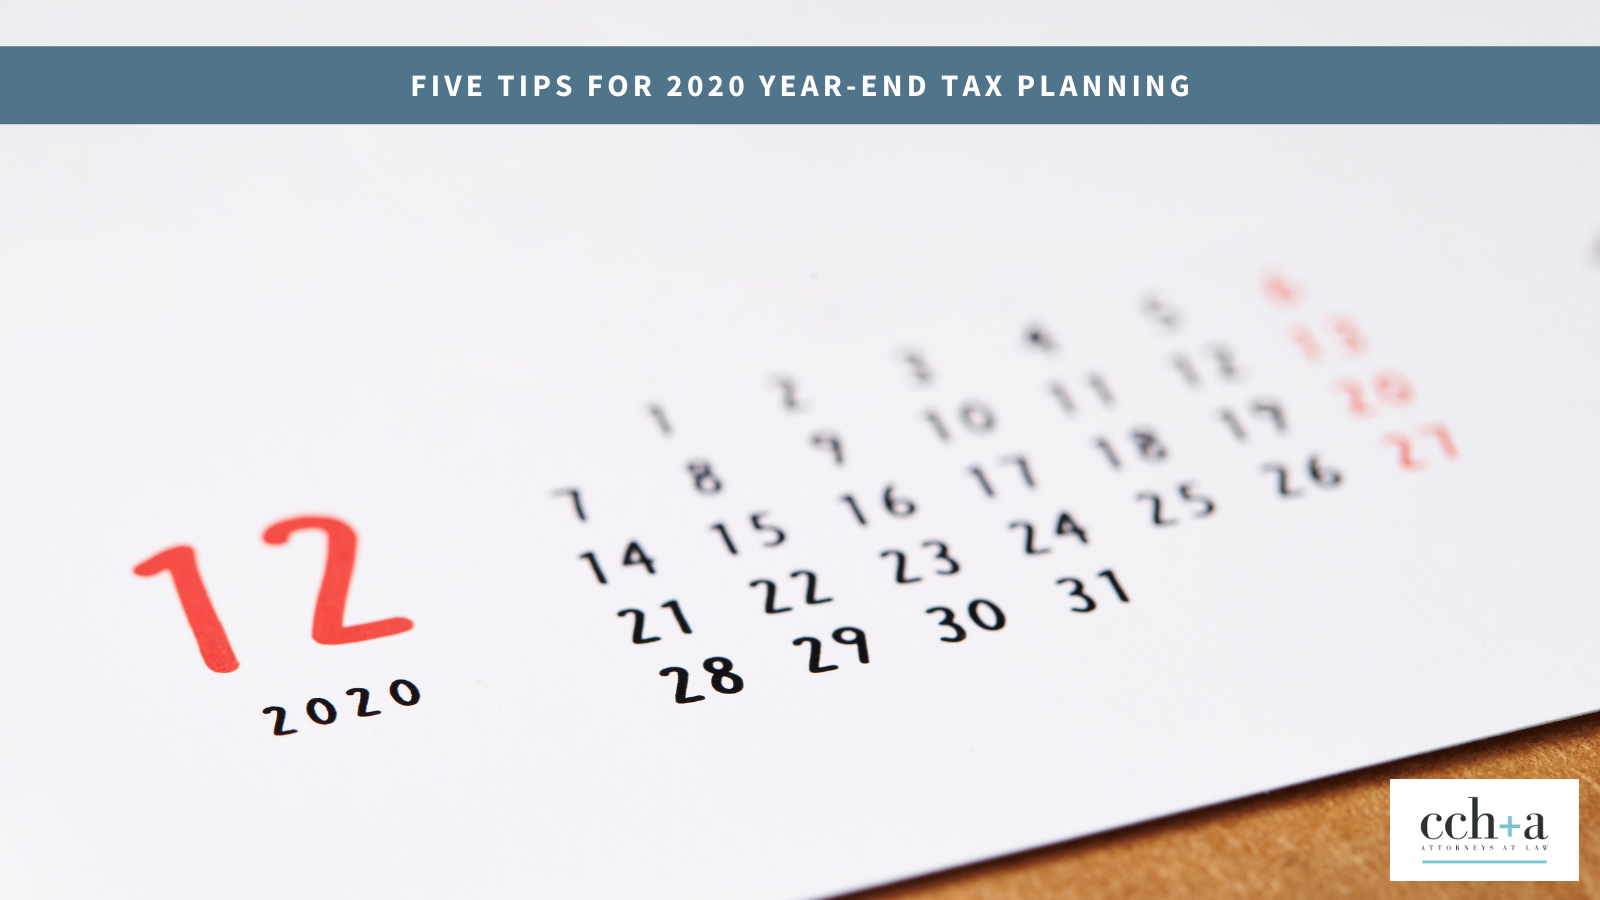 Ccha dec 2020 five tips for 2020 year end tax plan twitter